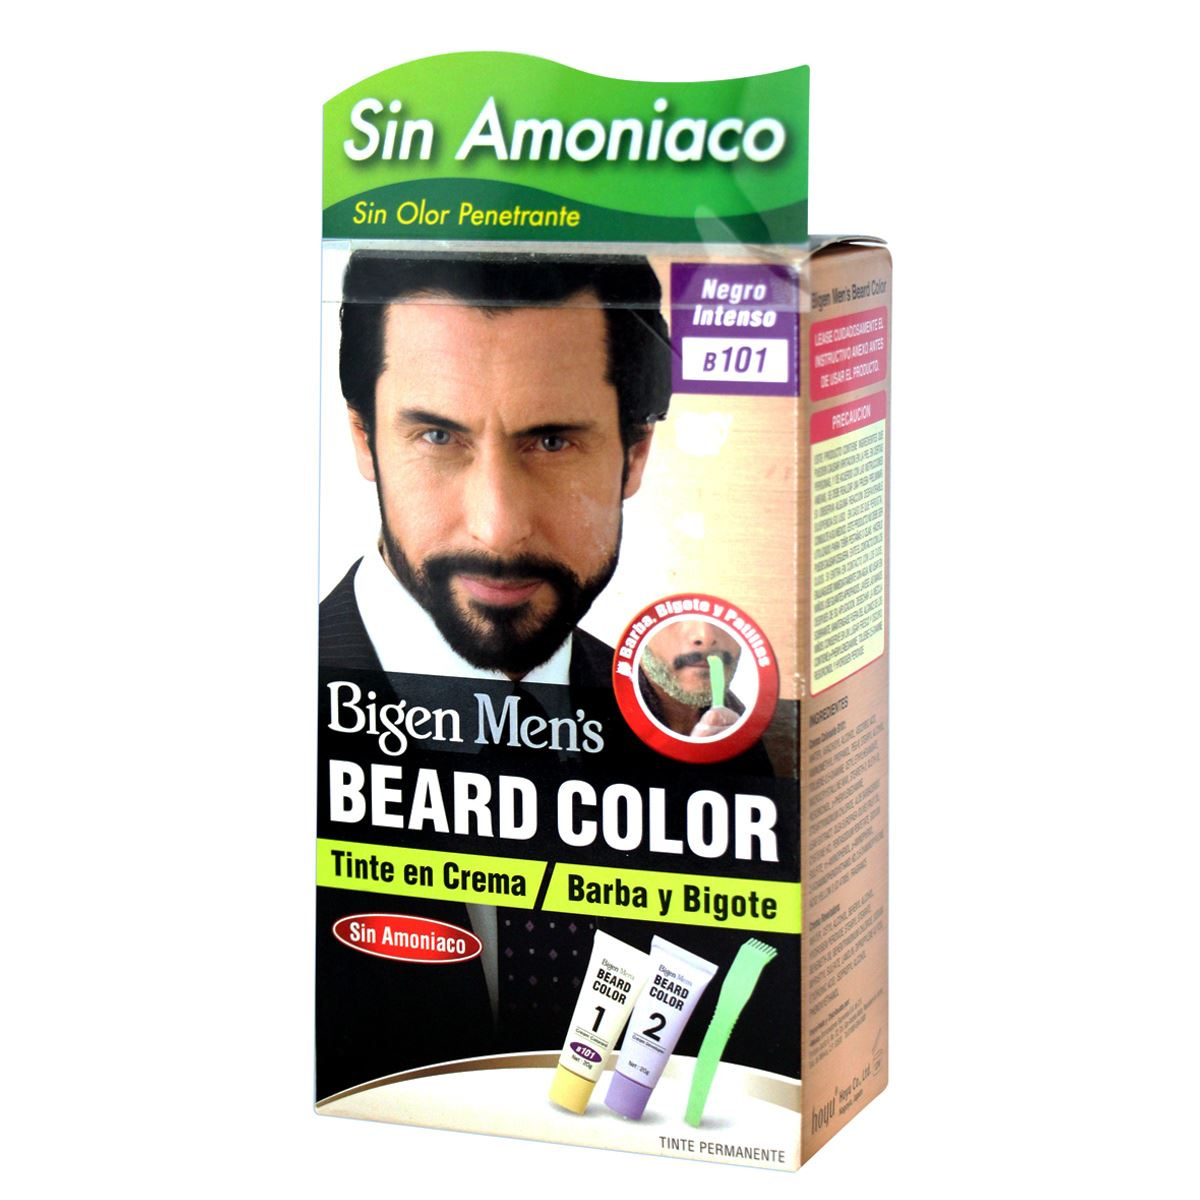 Bigen Coloración para Barba y Bigote color Negro Intenso